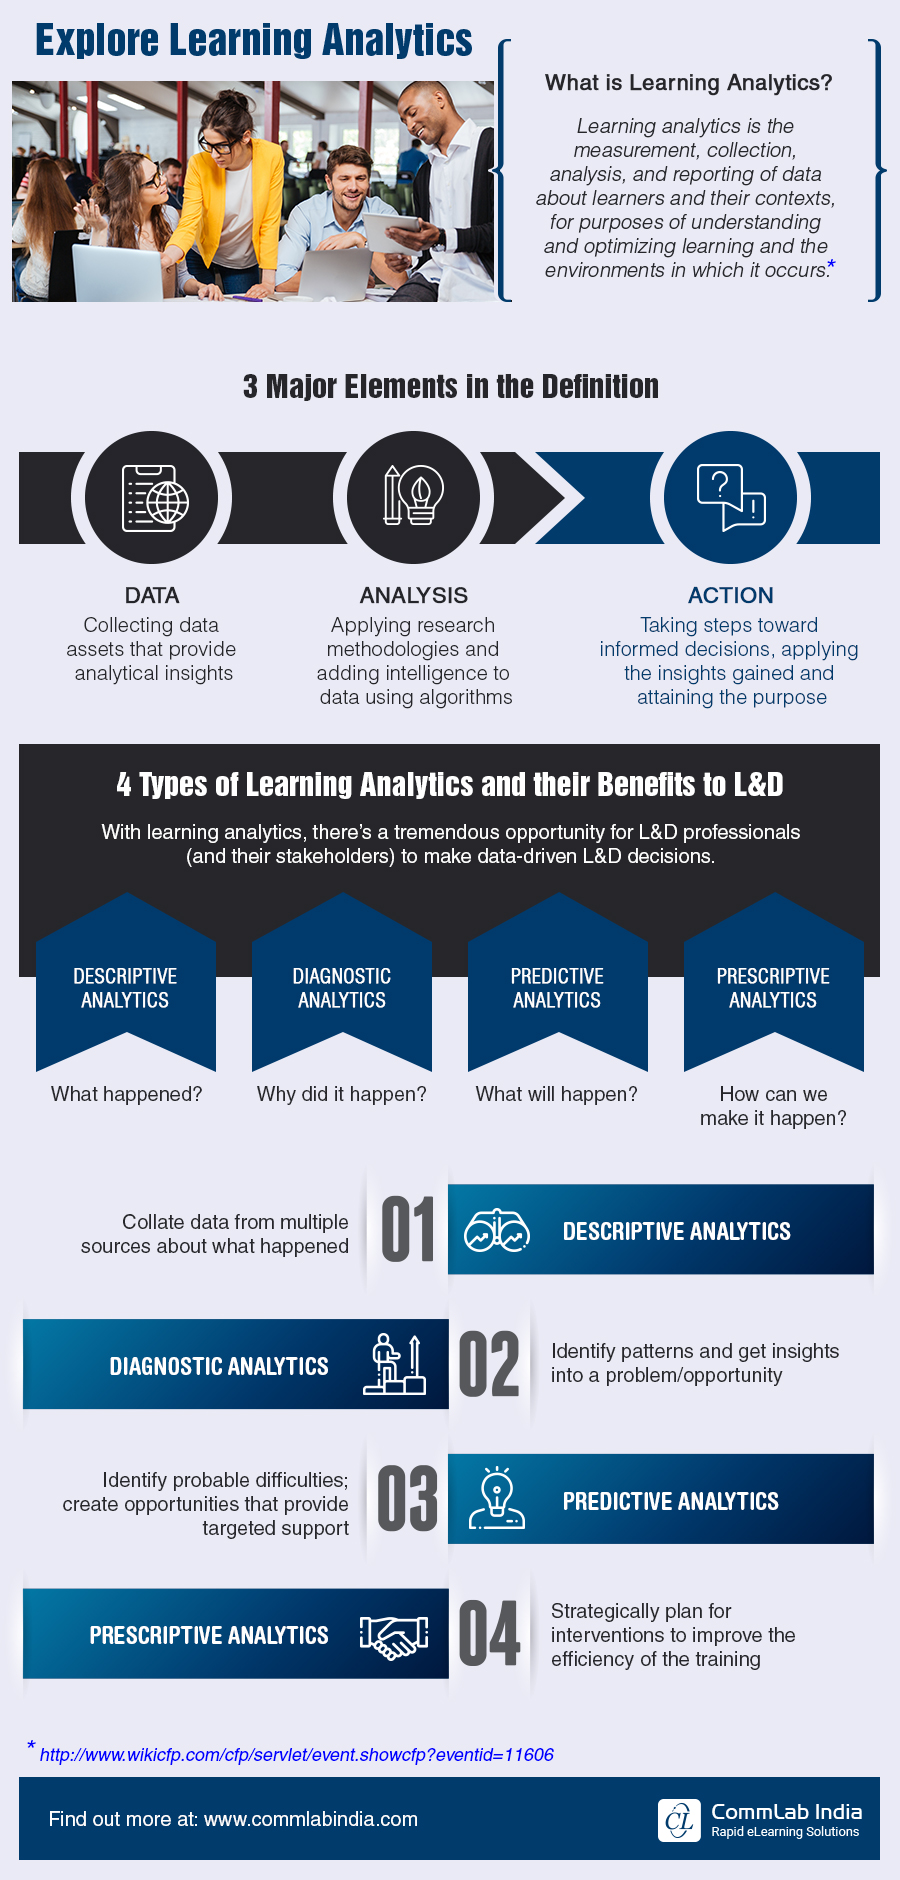 4 Types of Learning Analytics and their Benefits in L&D [Infographic]